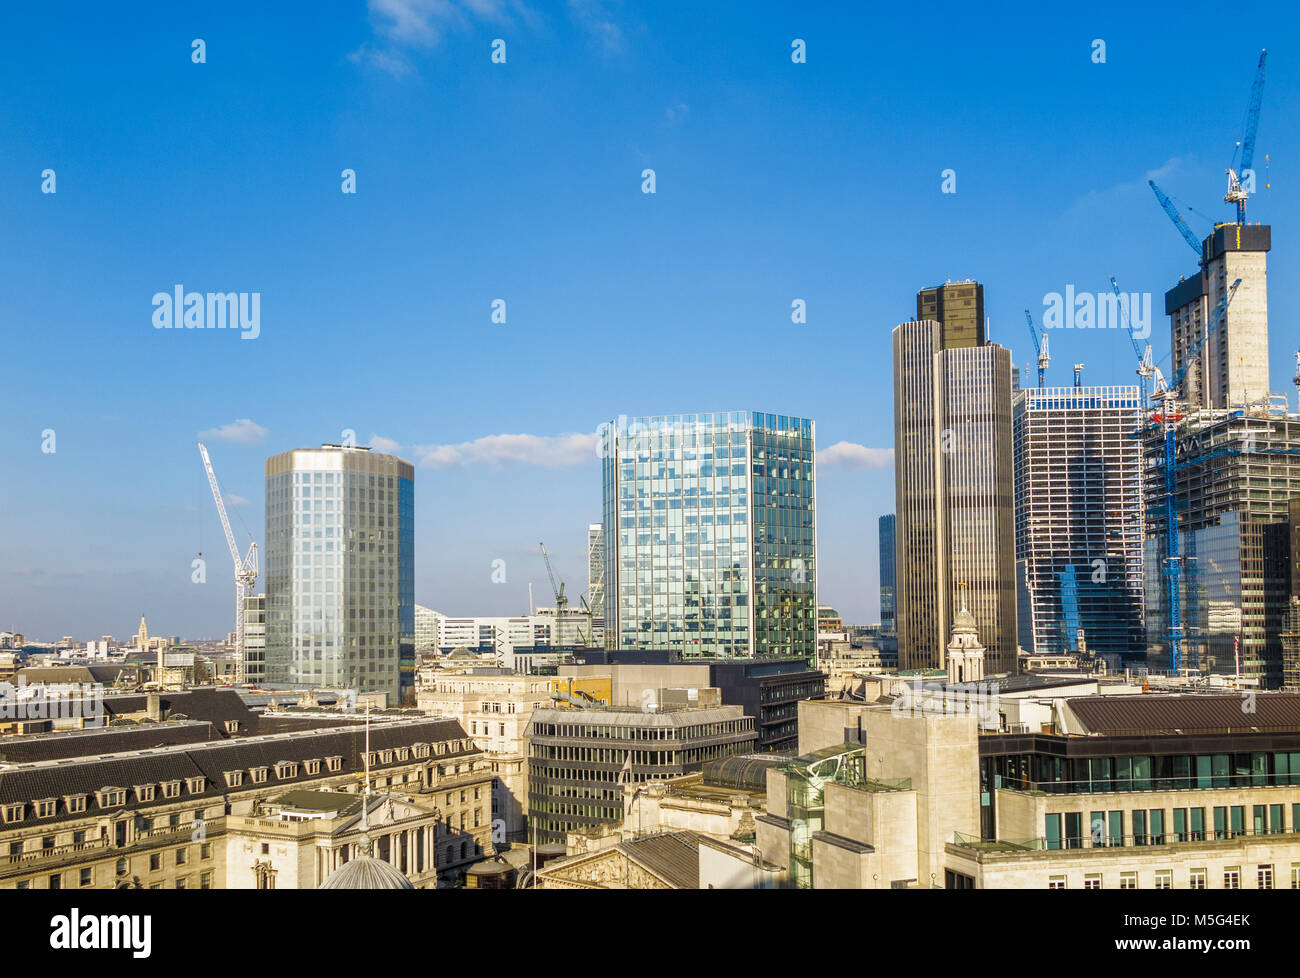 View of City of London Skyline: Angel Court, Stock Exchange Tower, Tower 42, under construction: 100 & 22 Bishopsgate - Stock Image